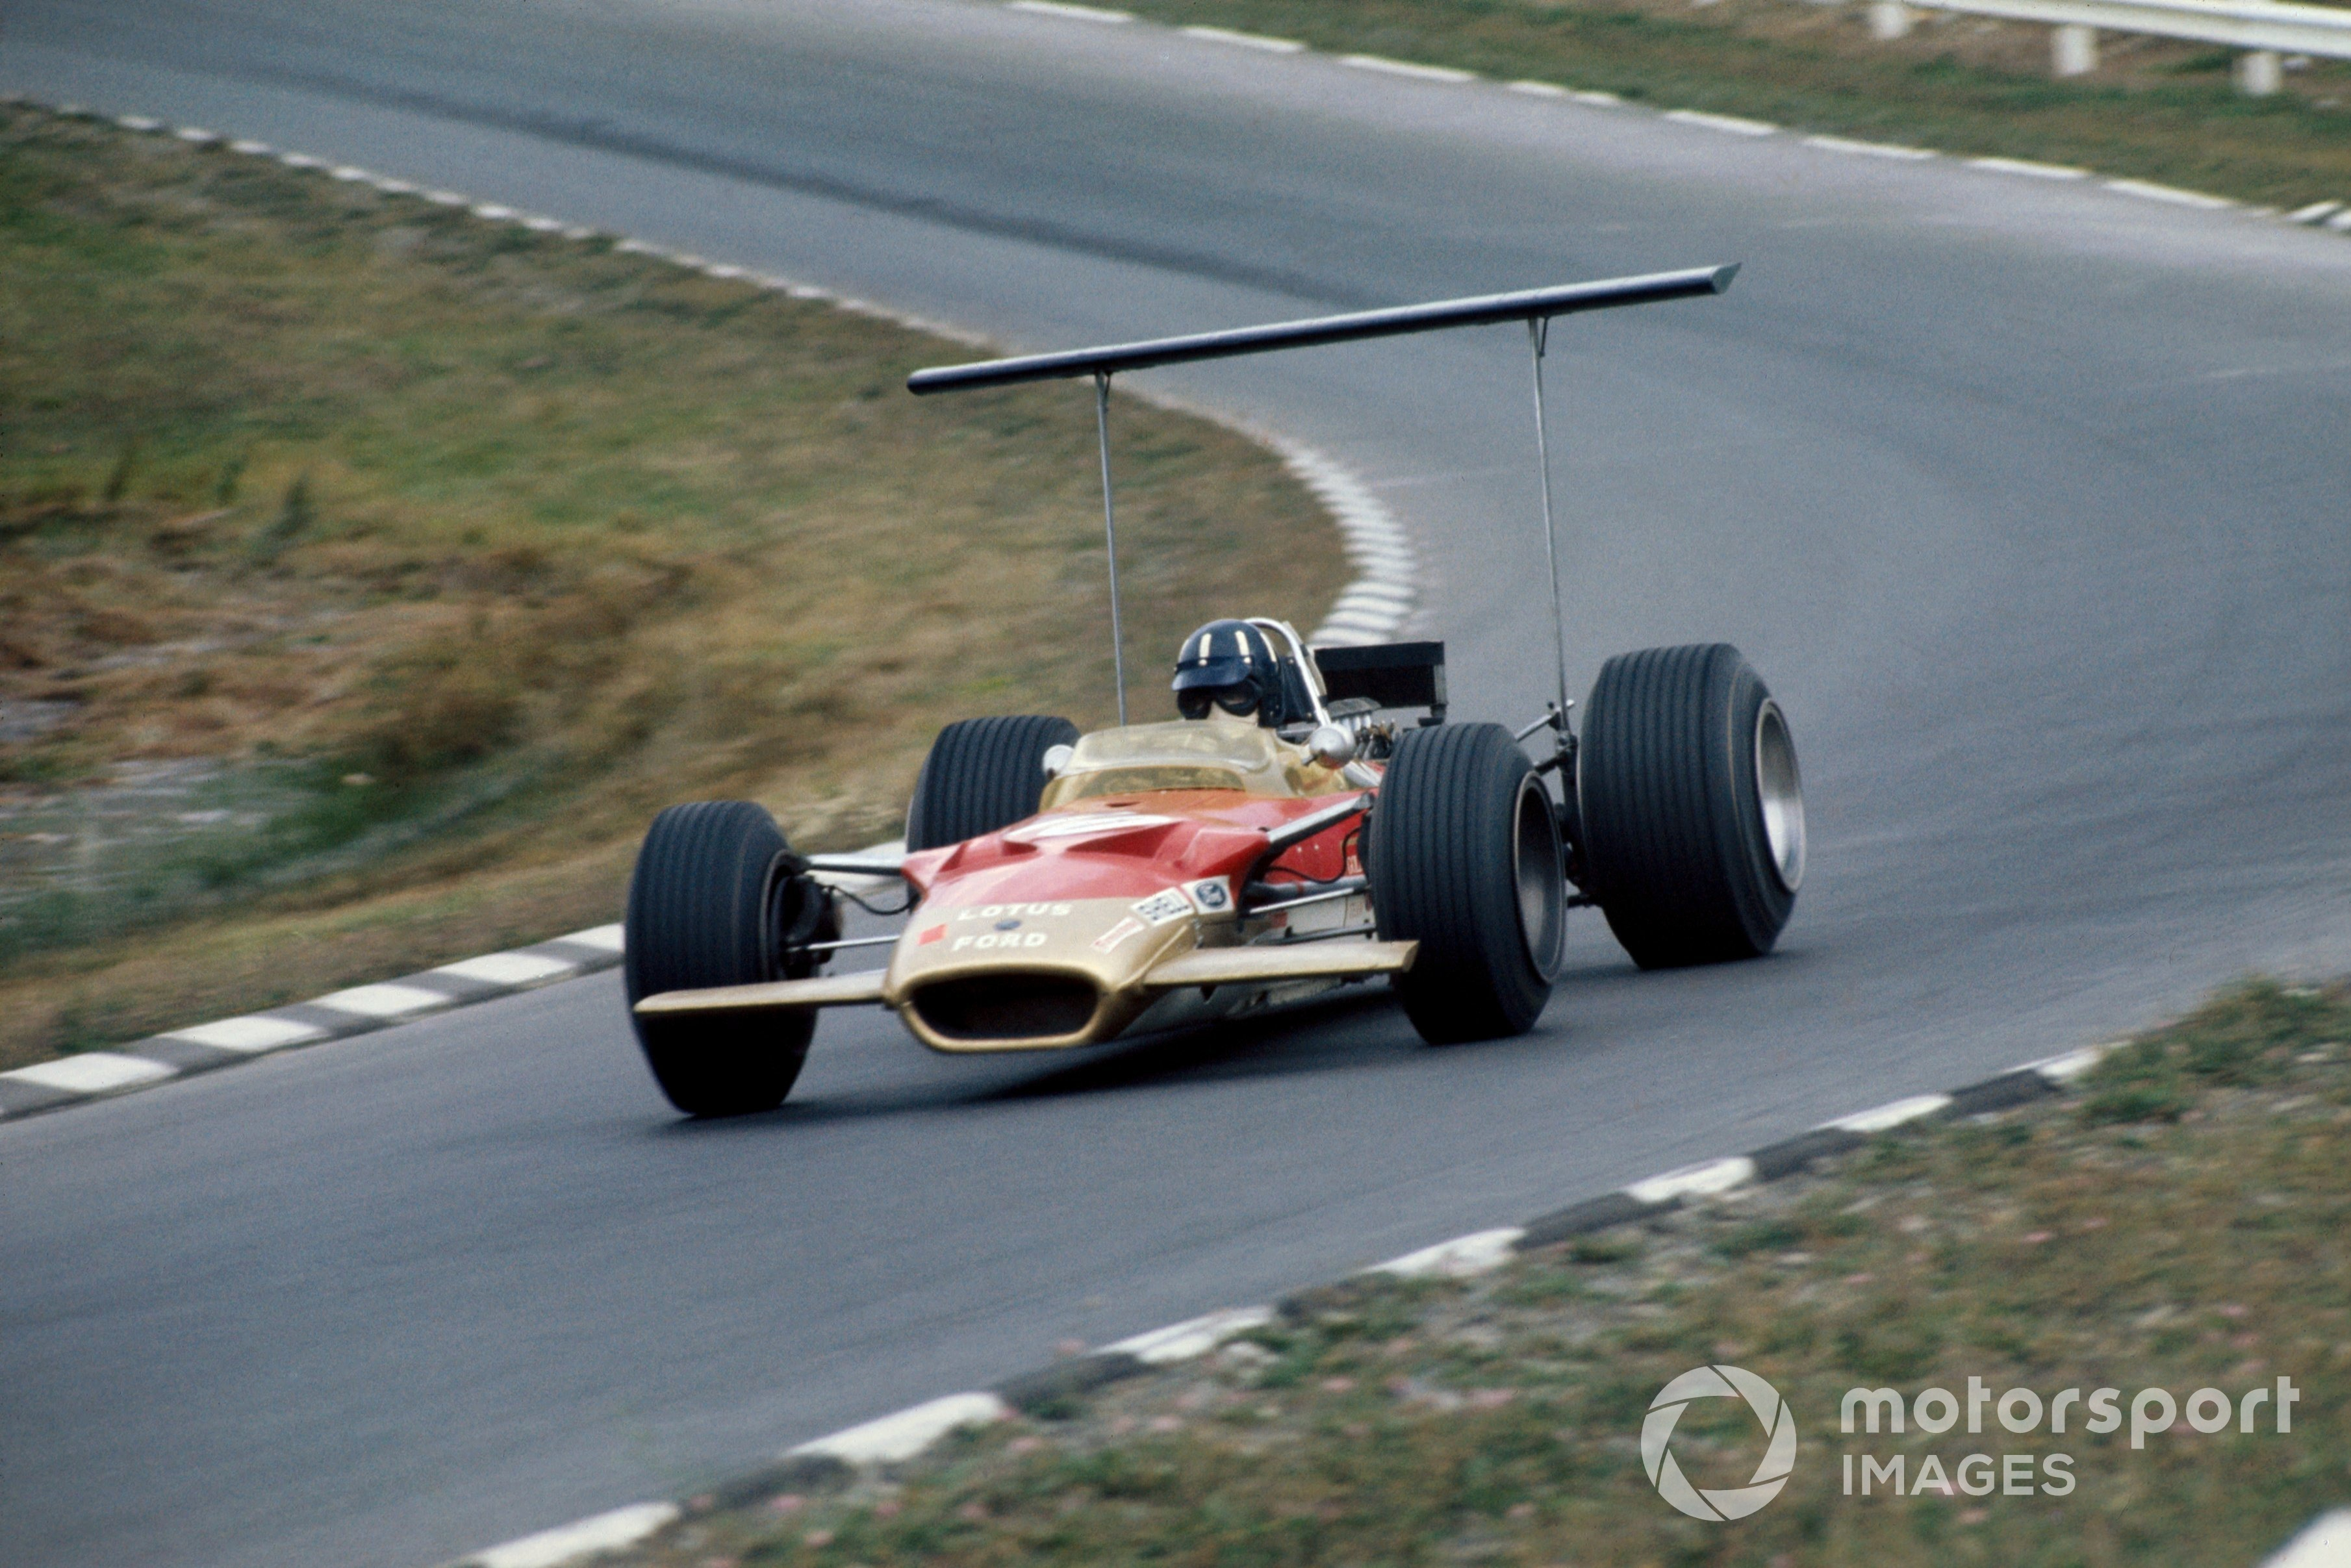 Graham Hill in the Lotus-Ford 49 in the 1968 United Staes GP